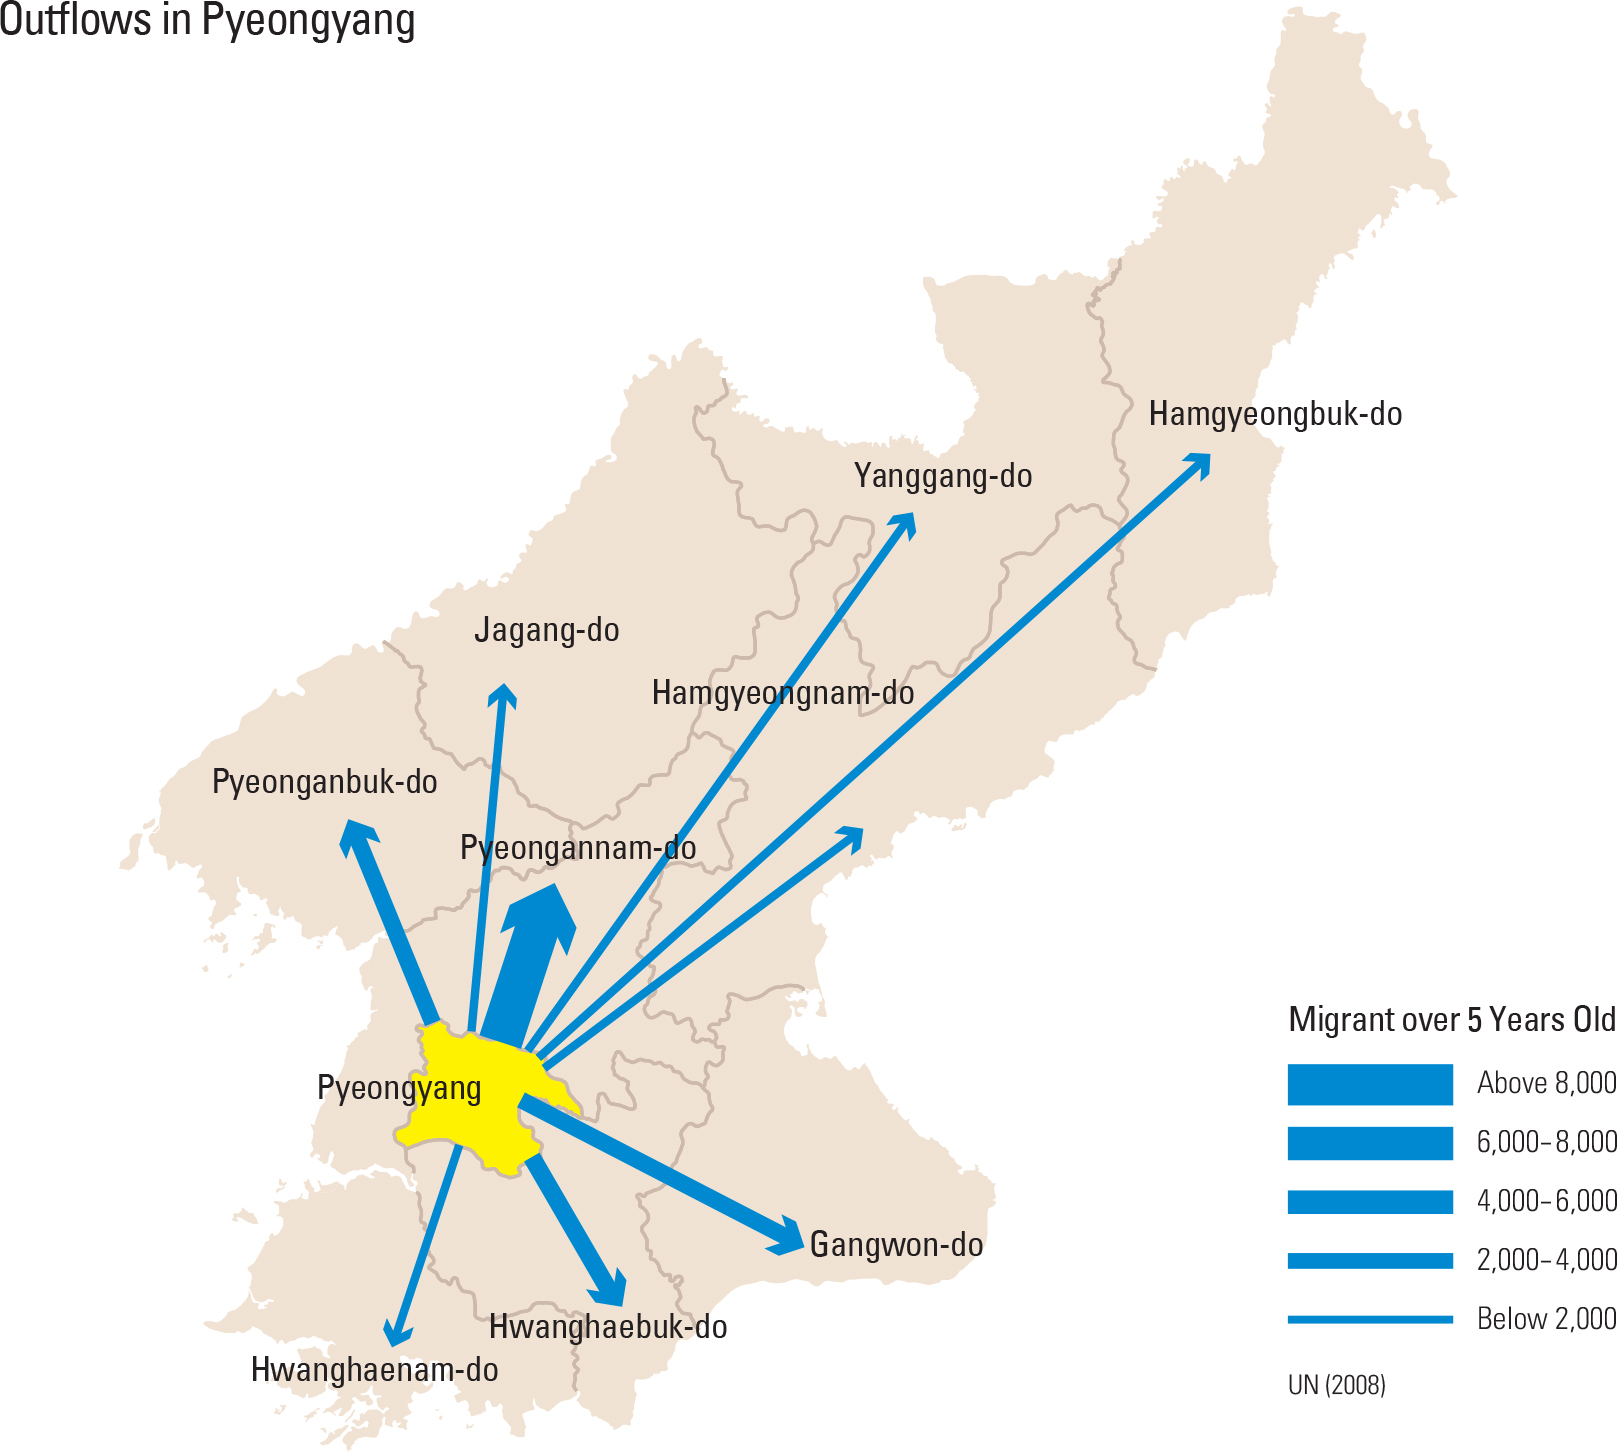 Outflows in Pyeongyang